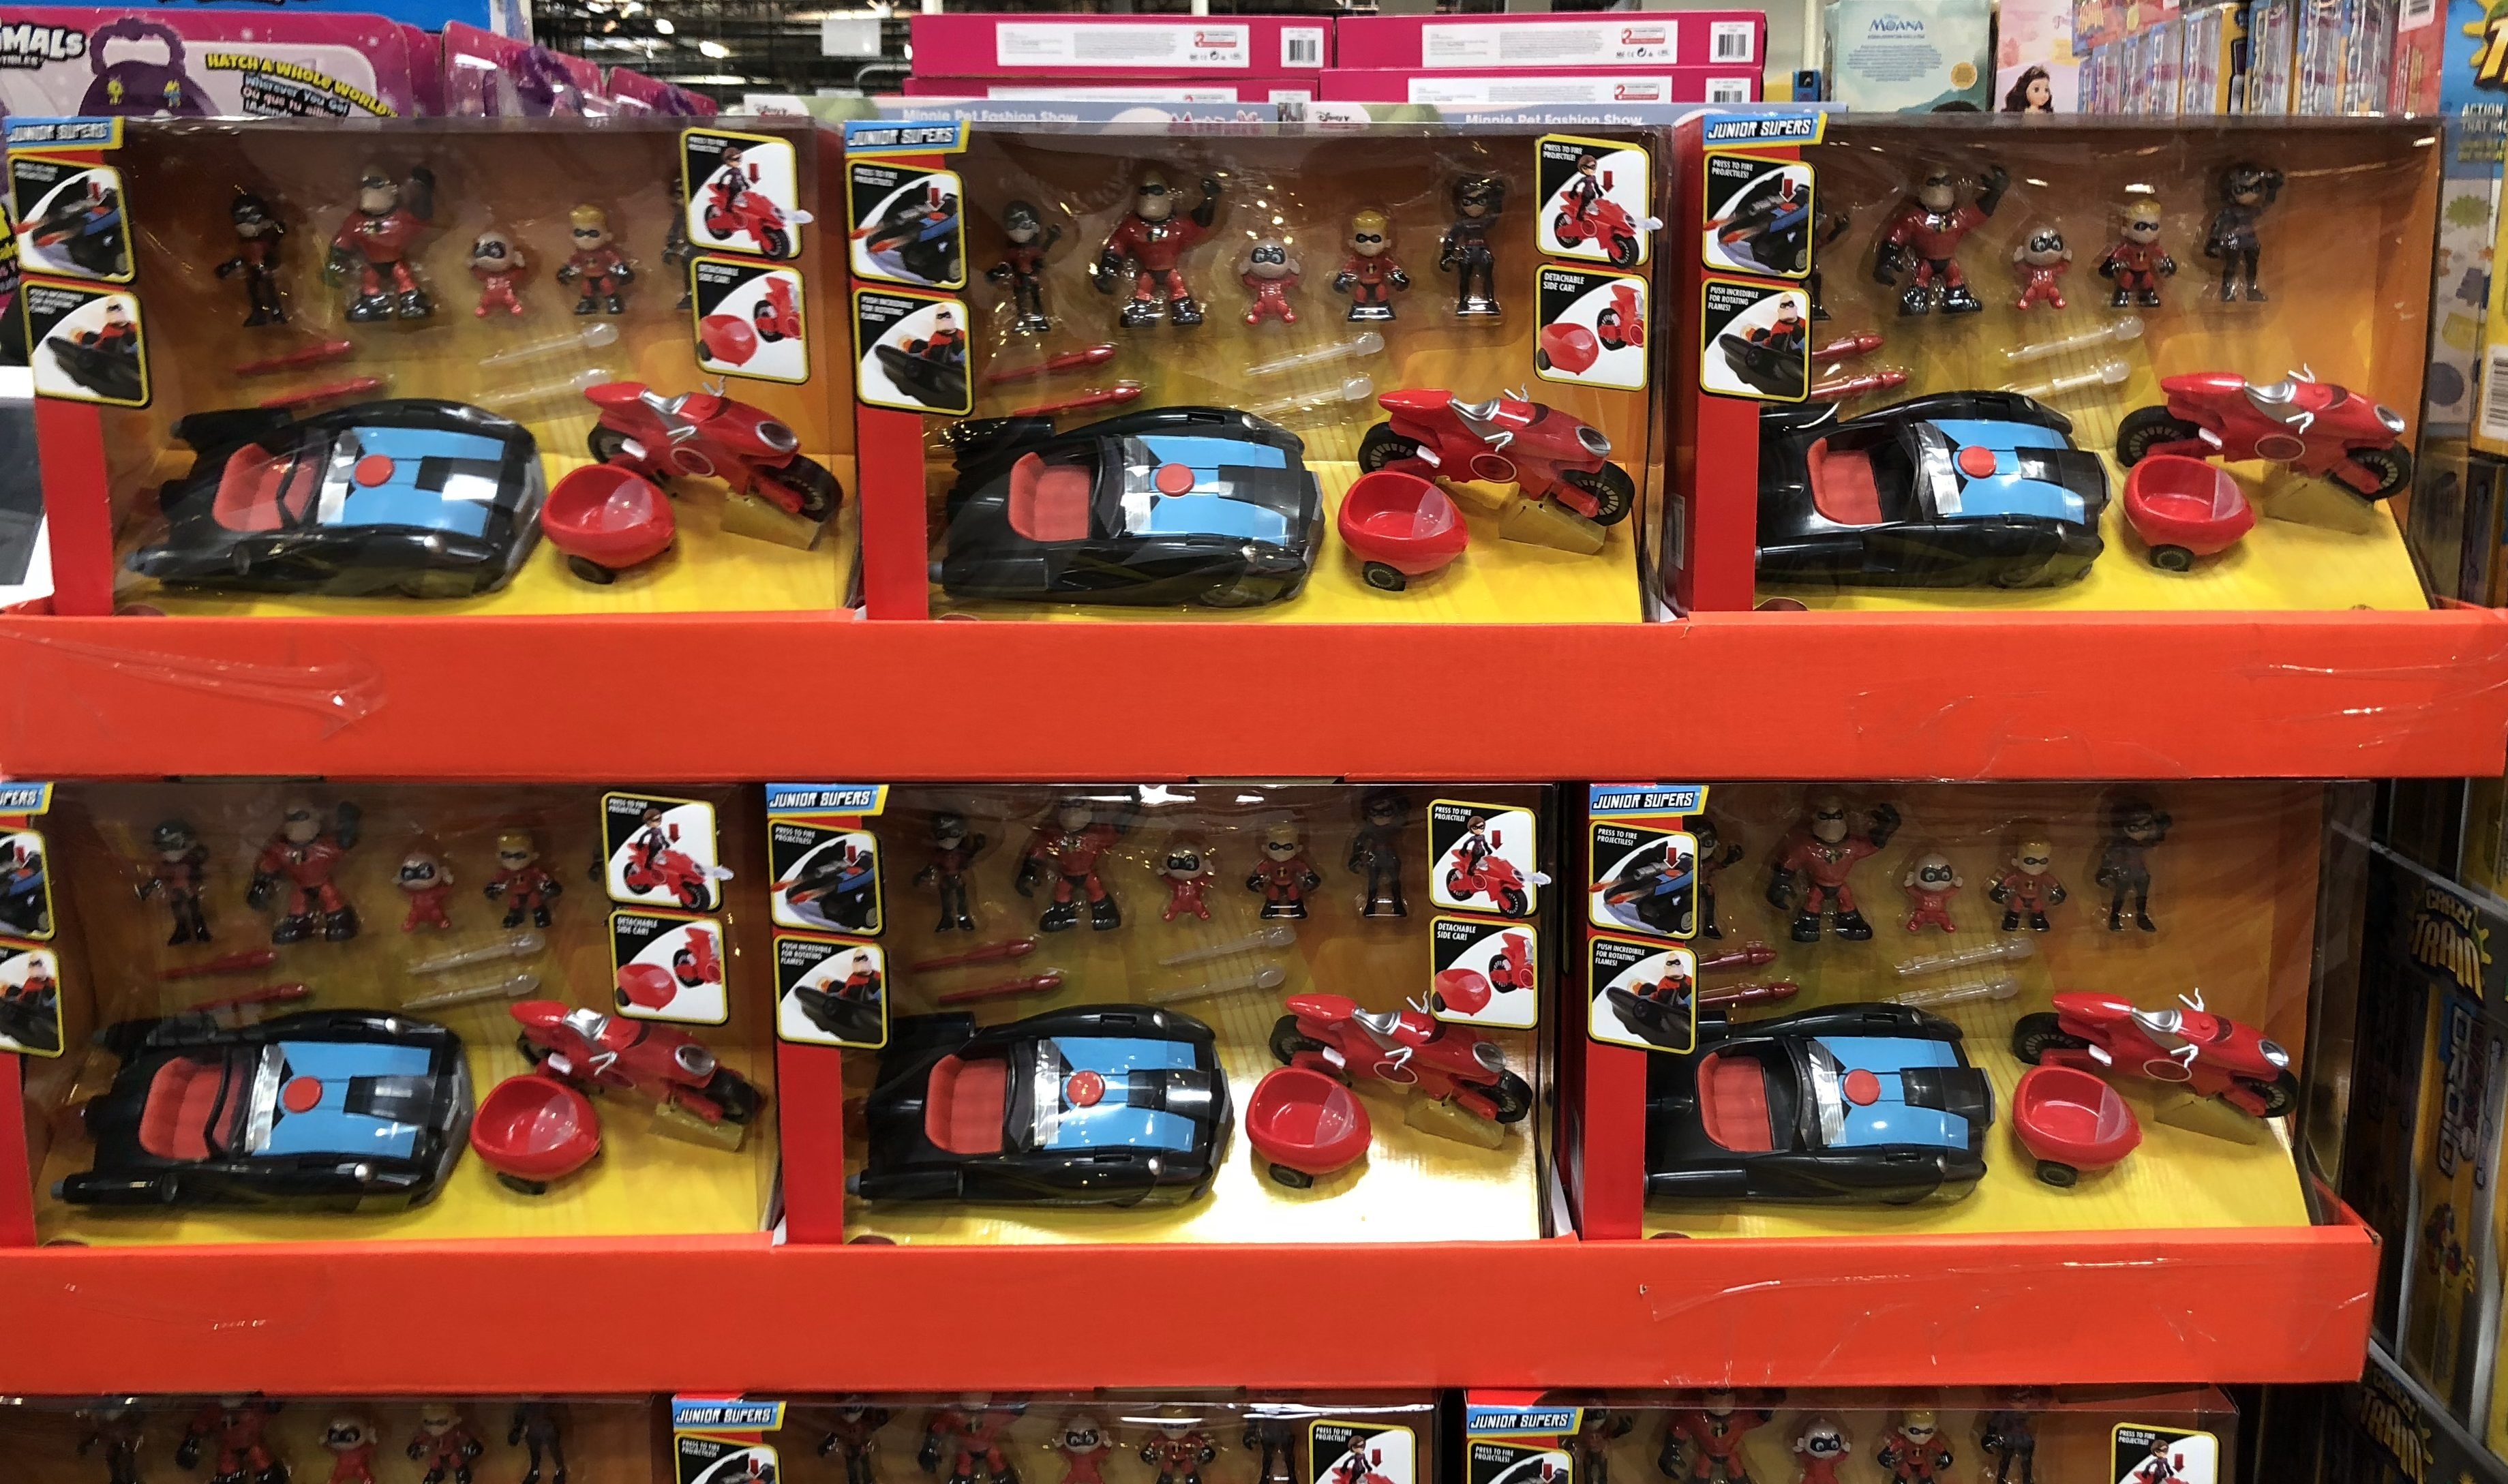 The best holiday toy deals for 2018 include Disney Pixar Incredibles 2 Family & Vehicle Sets at Costco